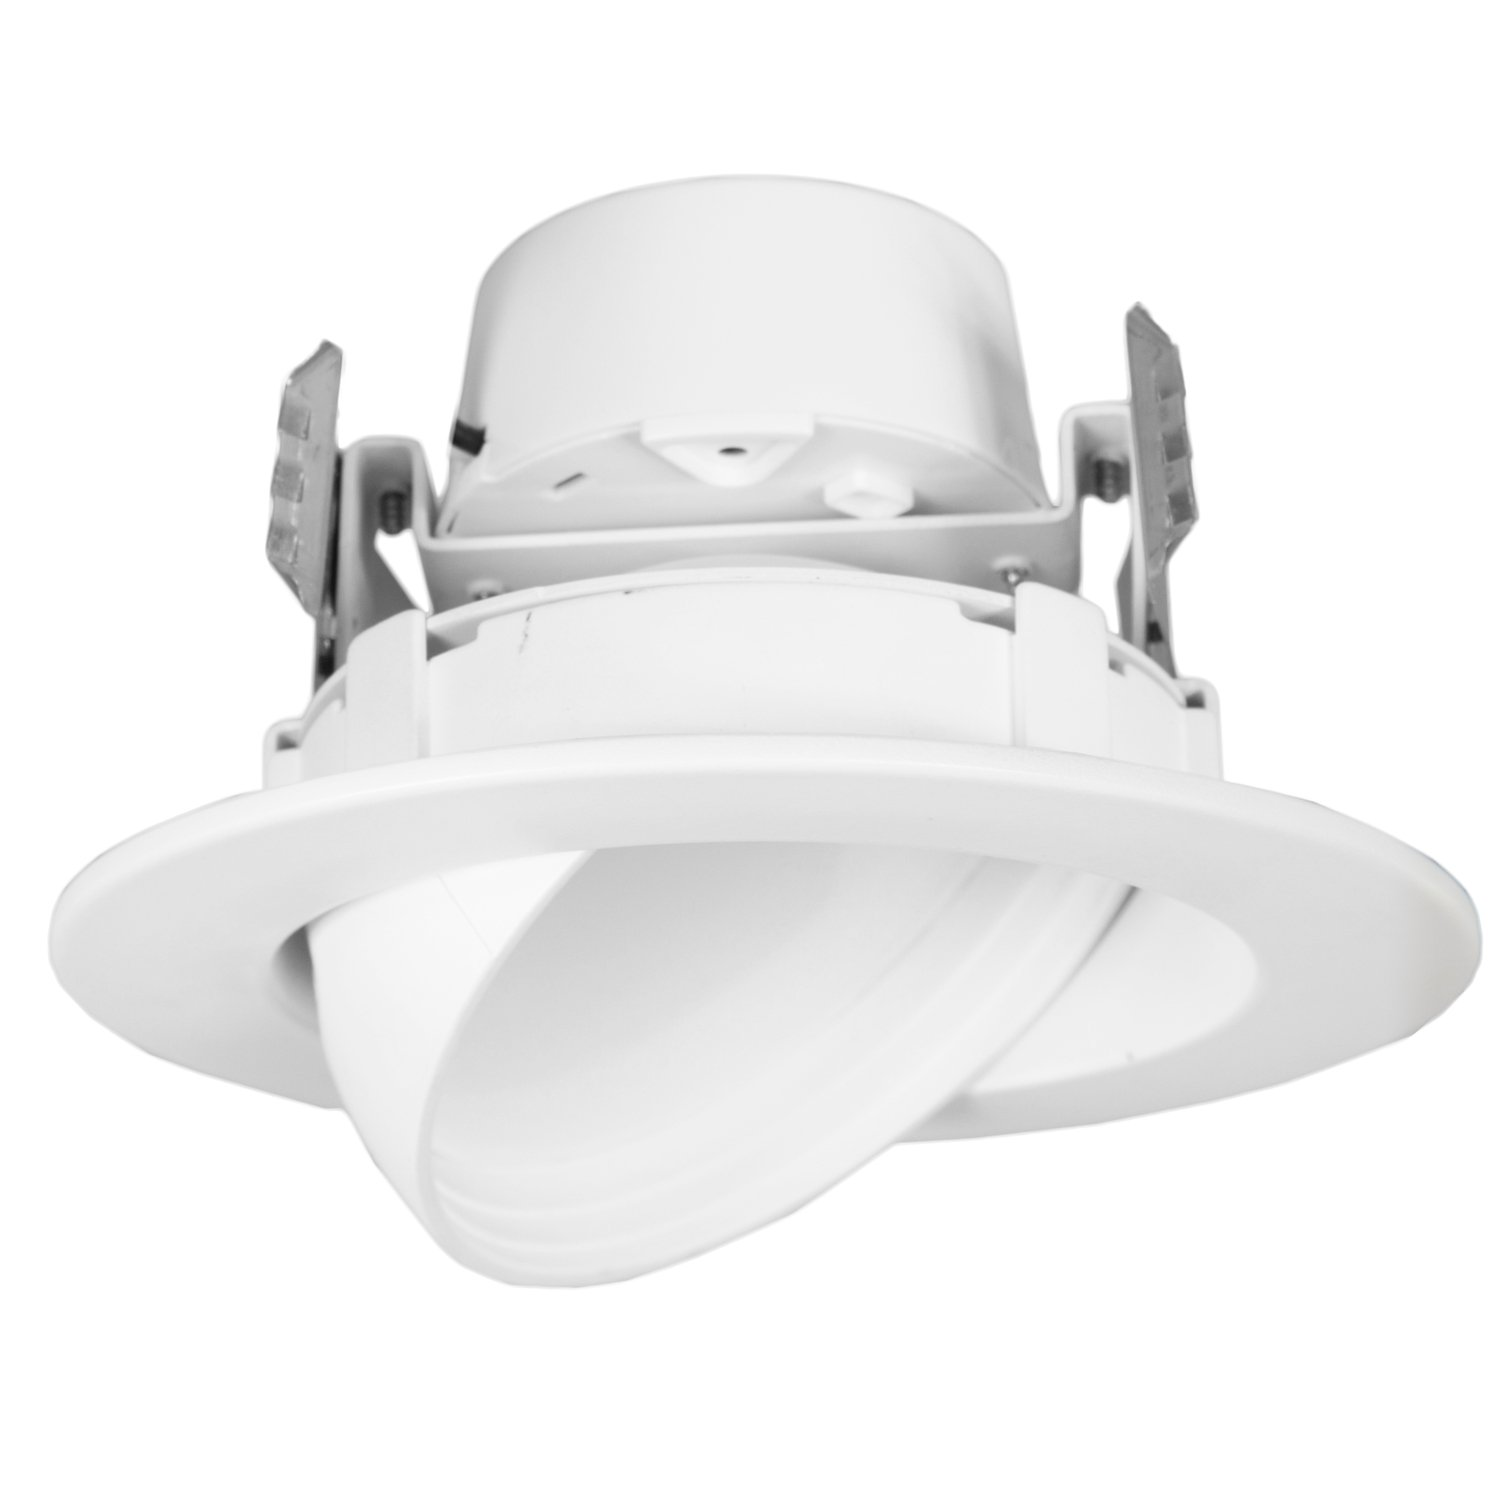 12 Watt 4''-Inch Rotatable 750 Lumens Maxxima LED Retrofit Downlight Gimbal Warm White 2700k Dimmable, E26 Straight Wire Connection, Energy Star by Maxxima